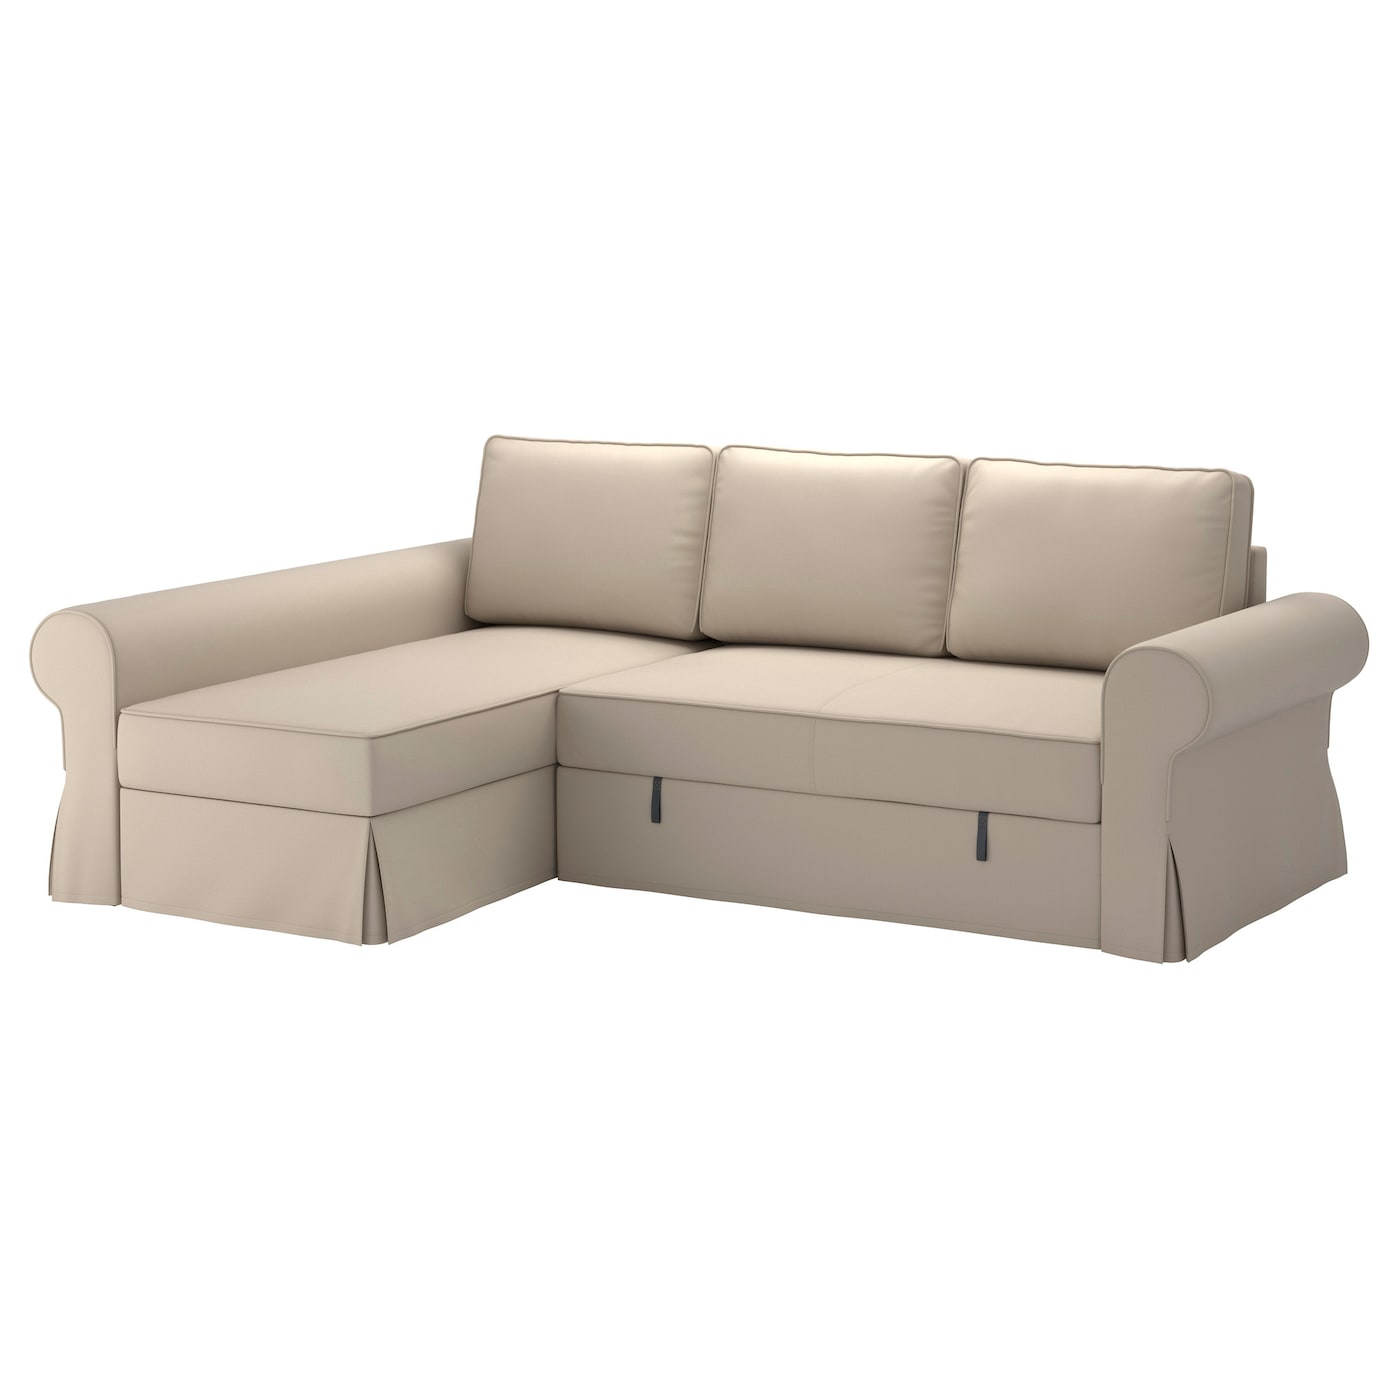 Backabro cover sofa bed with chaise longue ramna beige ikea for Chaise couch cover